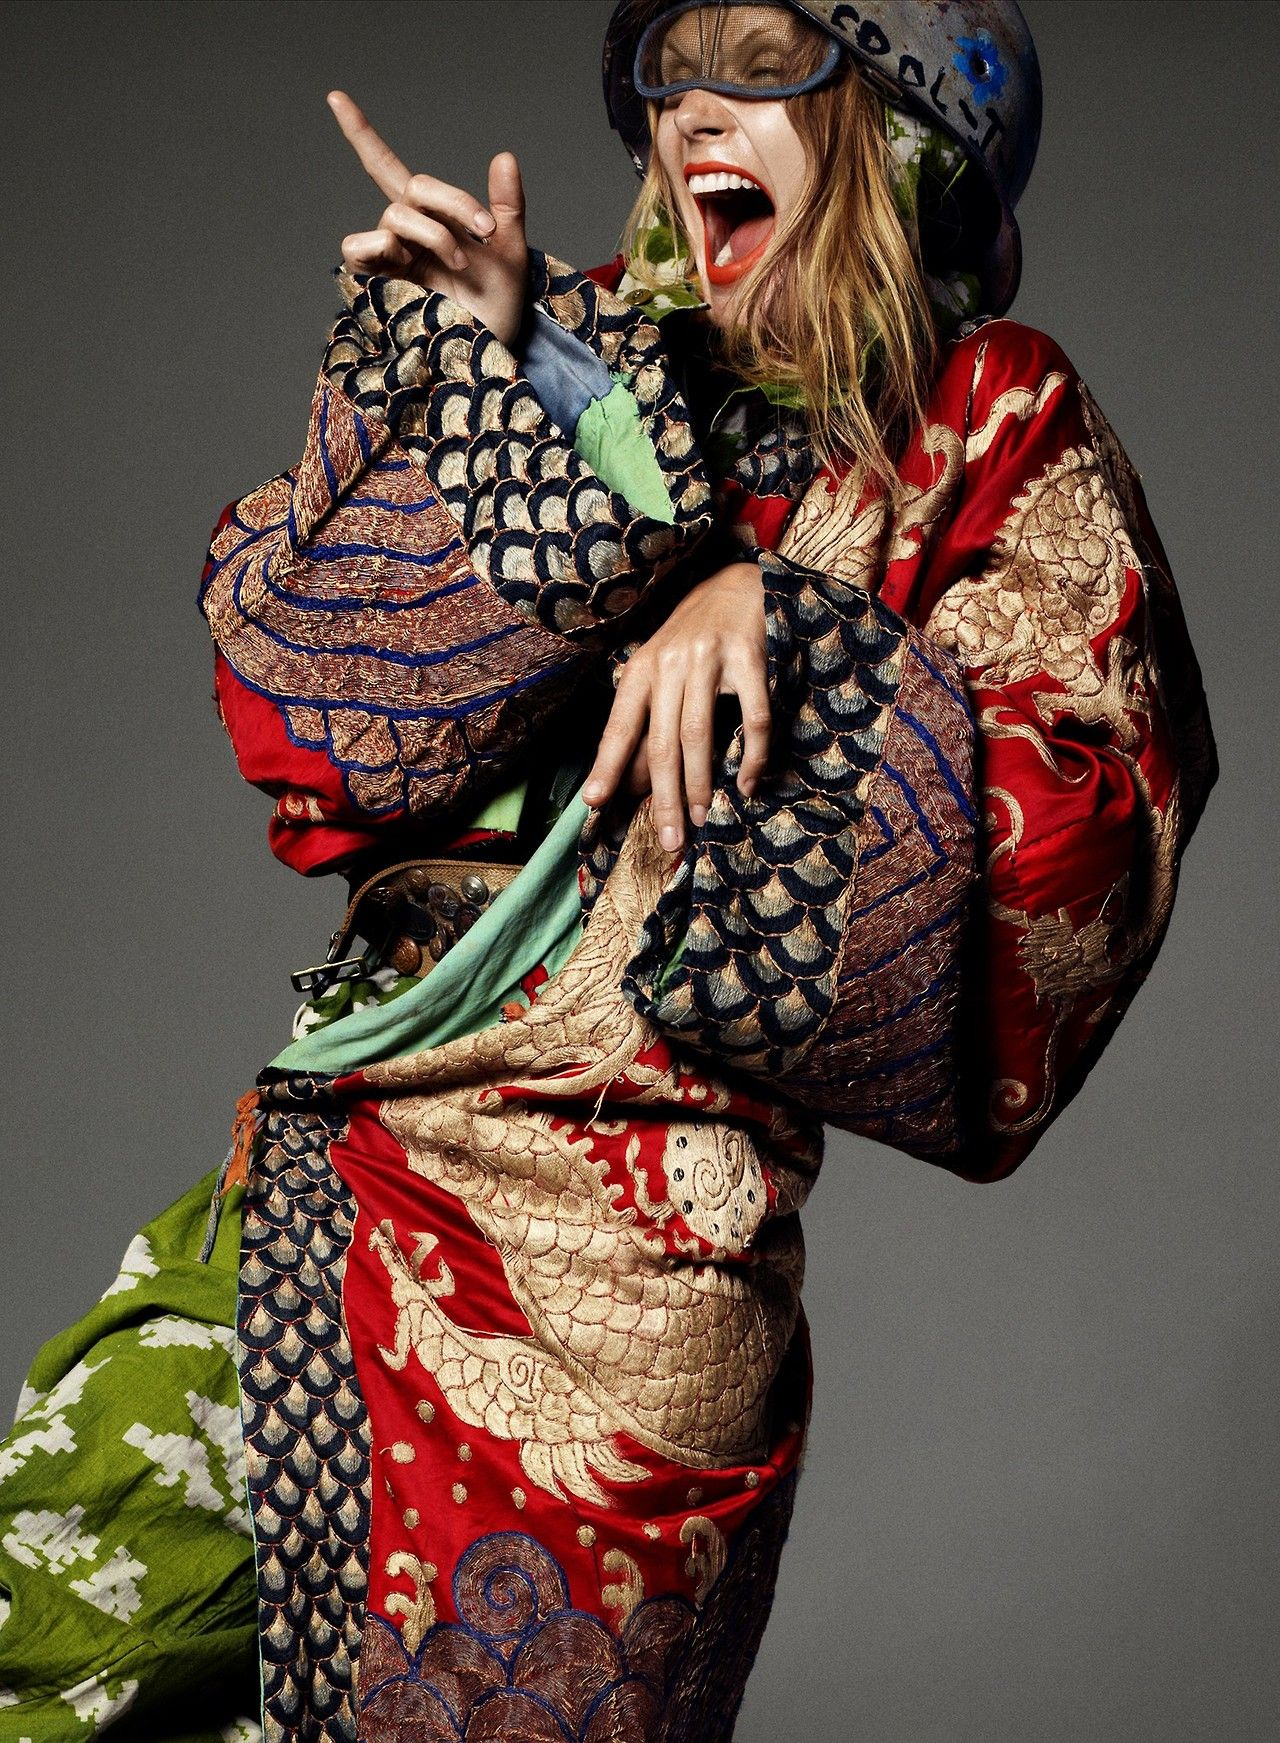 Maniacal Mister Melet Malgosia Bela by Aaron Ward for Let's Panic